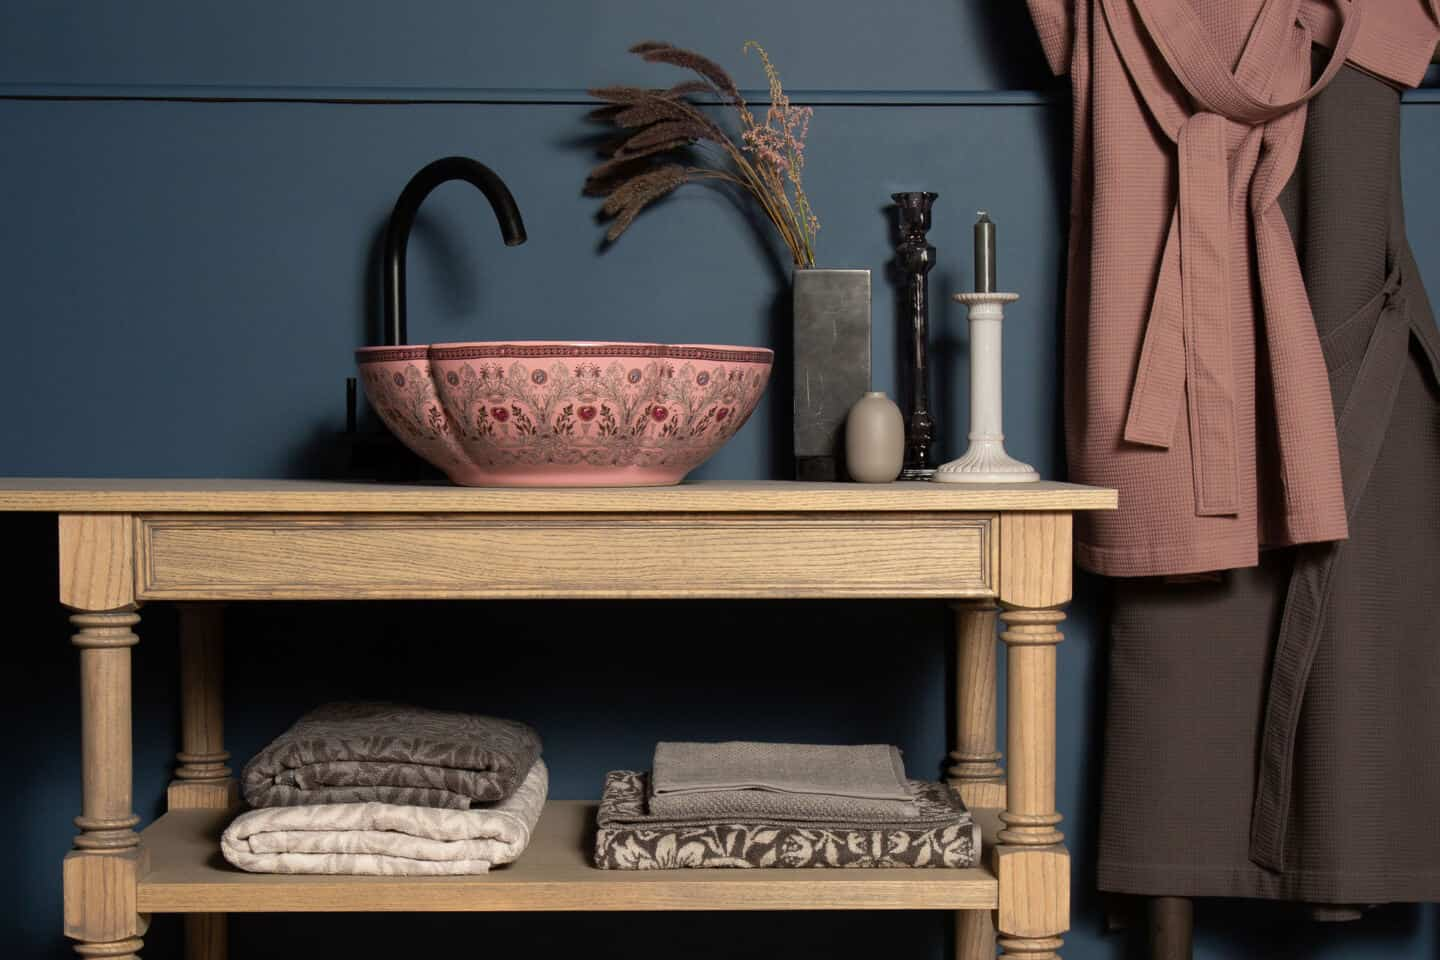 A scalloped pink bathroom basin with delicate floral patterning rests on a wooden vanity unit with a blue wall behind